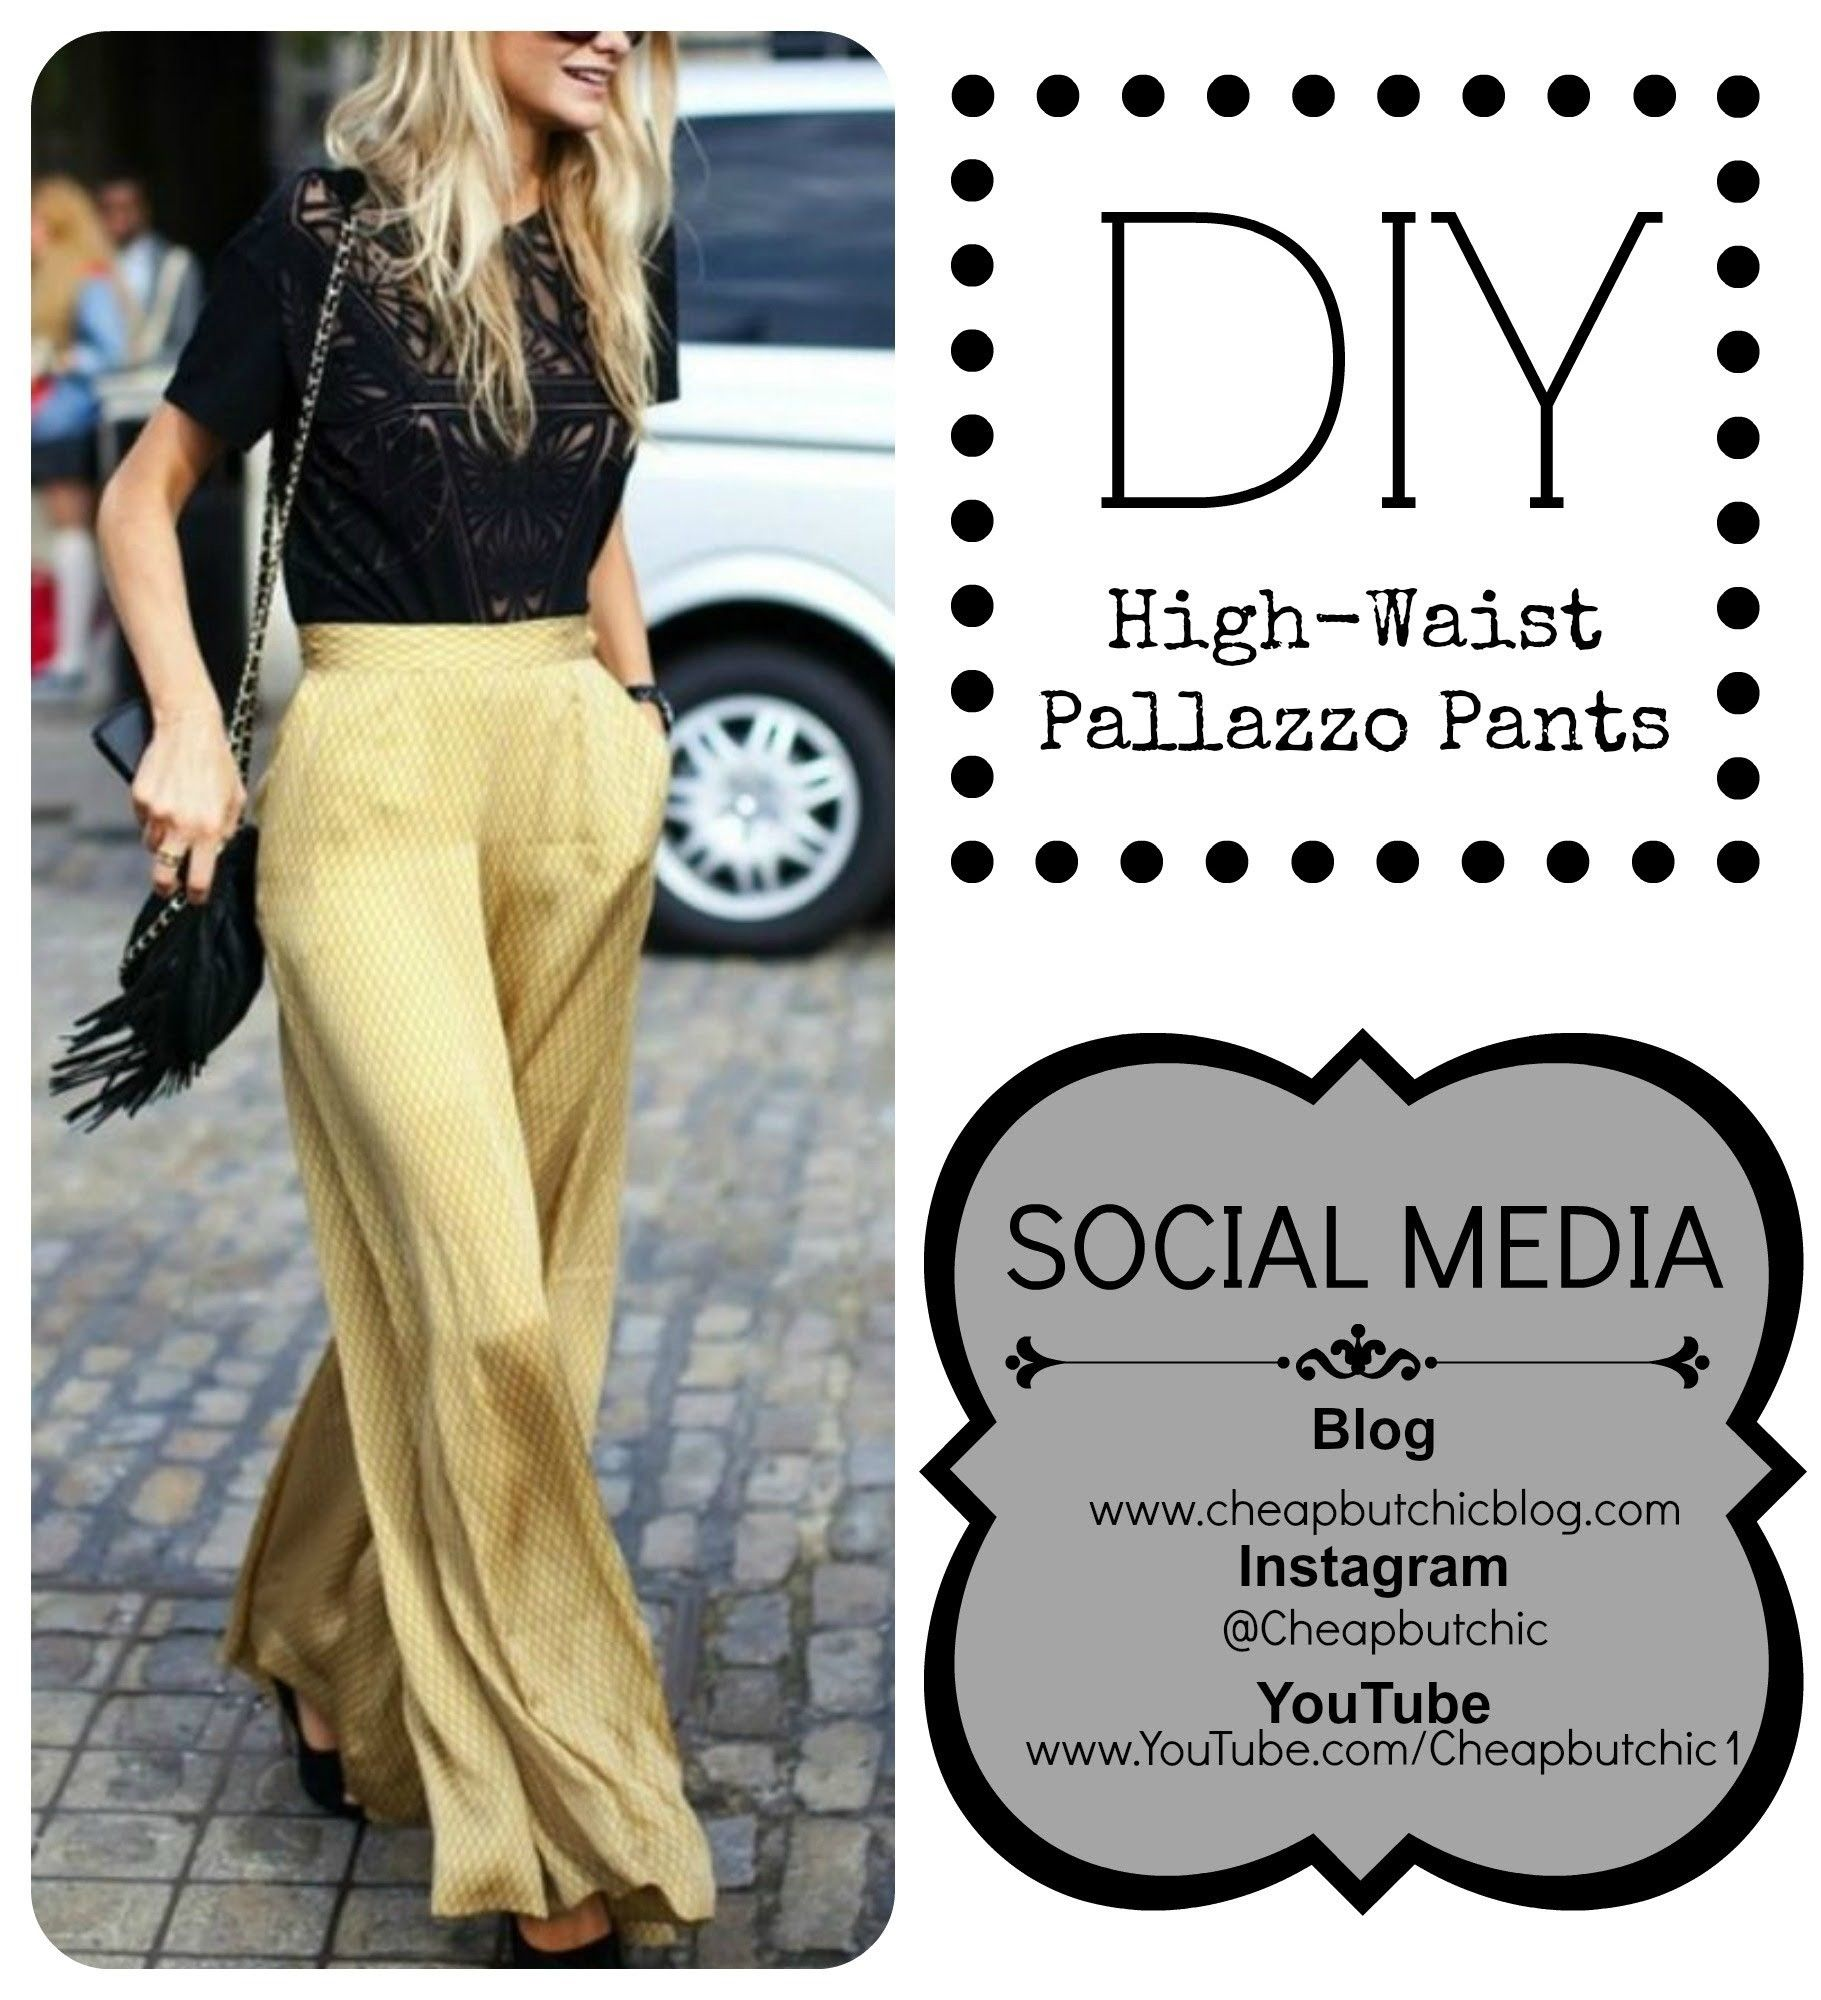 Sew With Me High Waist Pallazzo Pants Sewing Projects Diy